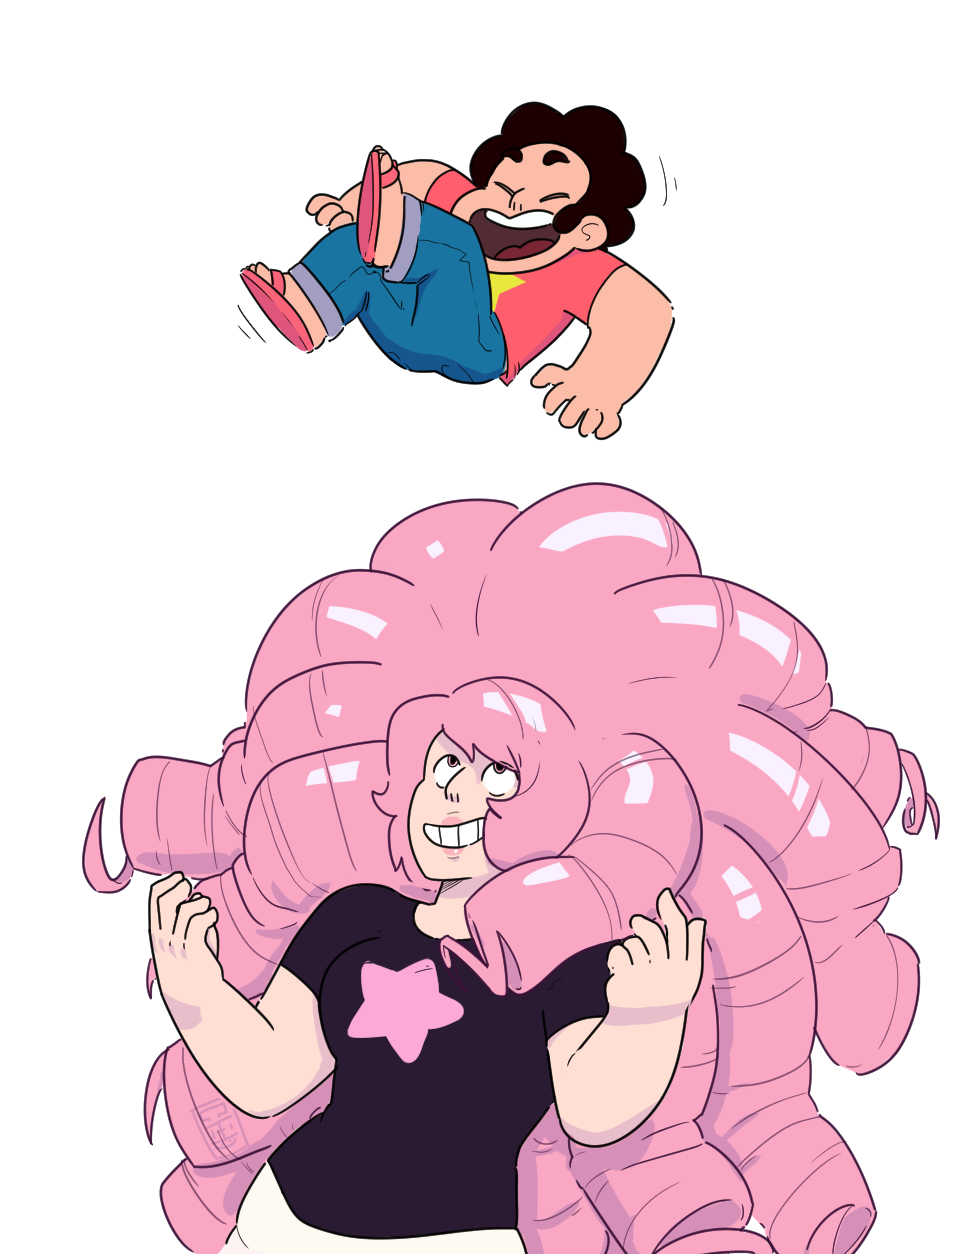 I'm good, though maybe not cool. It's still august here. I don't really know why I like drawing Steven Universe. There's a lot of stuff about it. I like the show, I like the character design, the art...